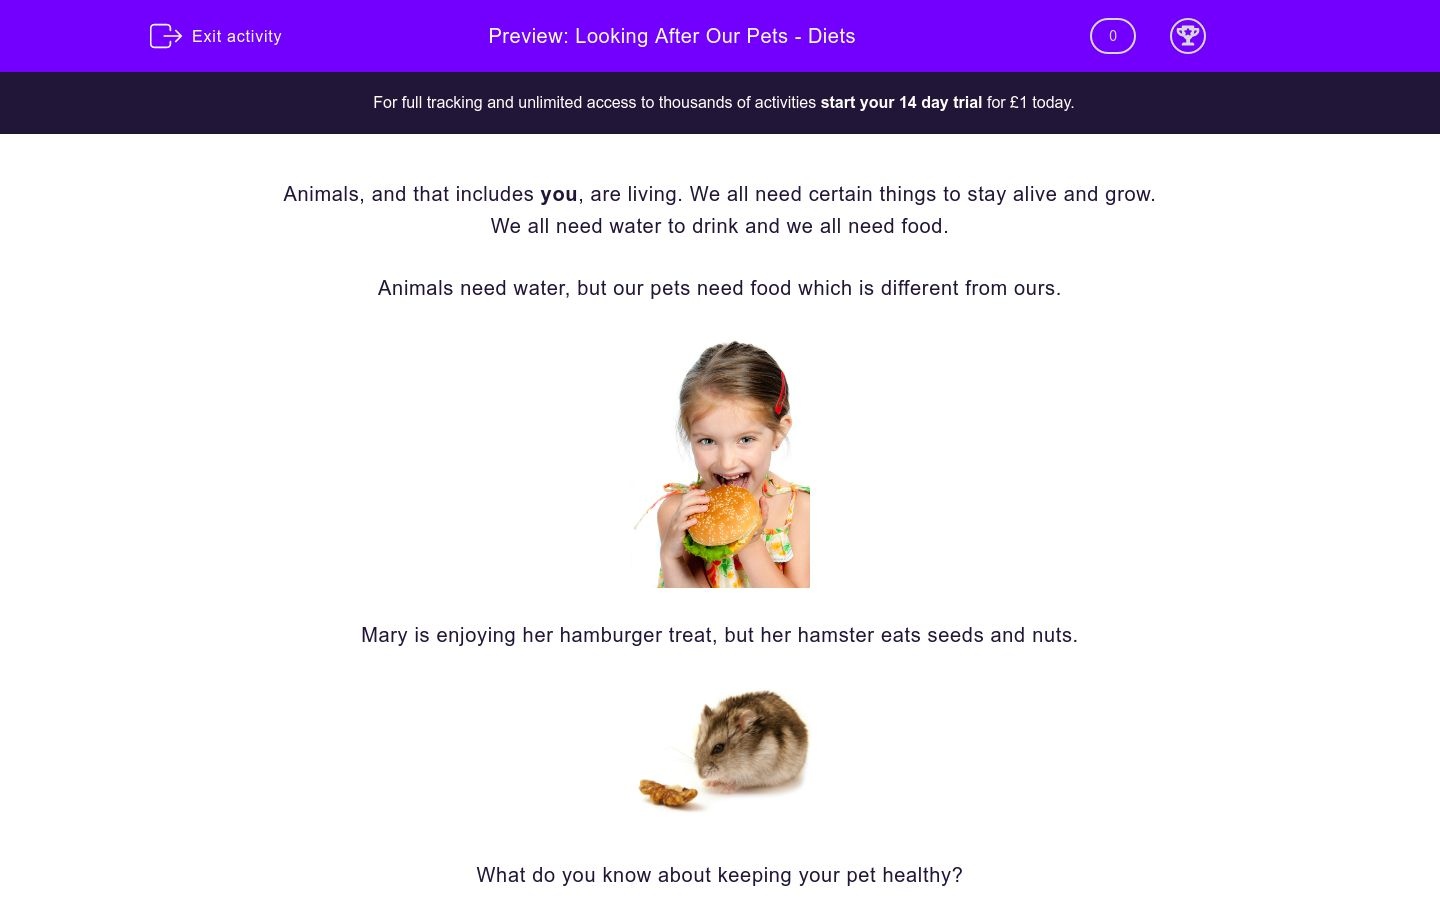 'Looking After Our Pets - Diets' worksheet